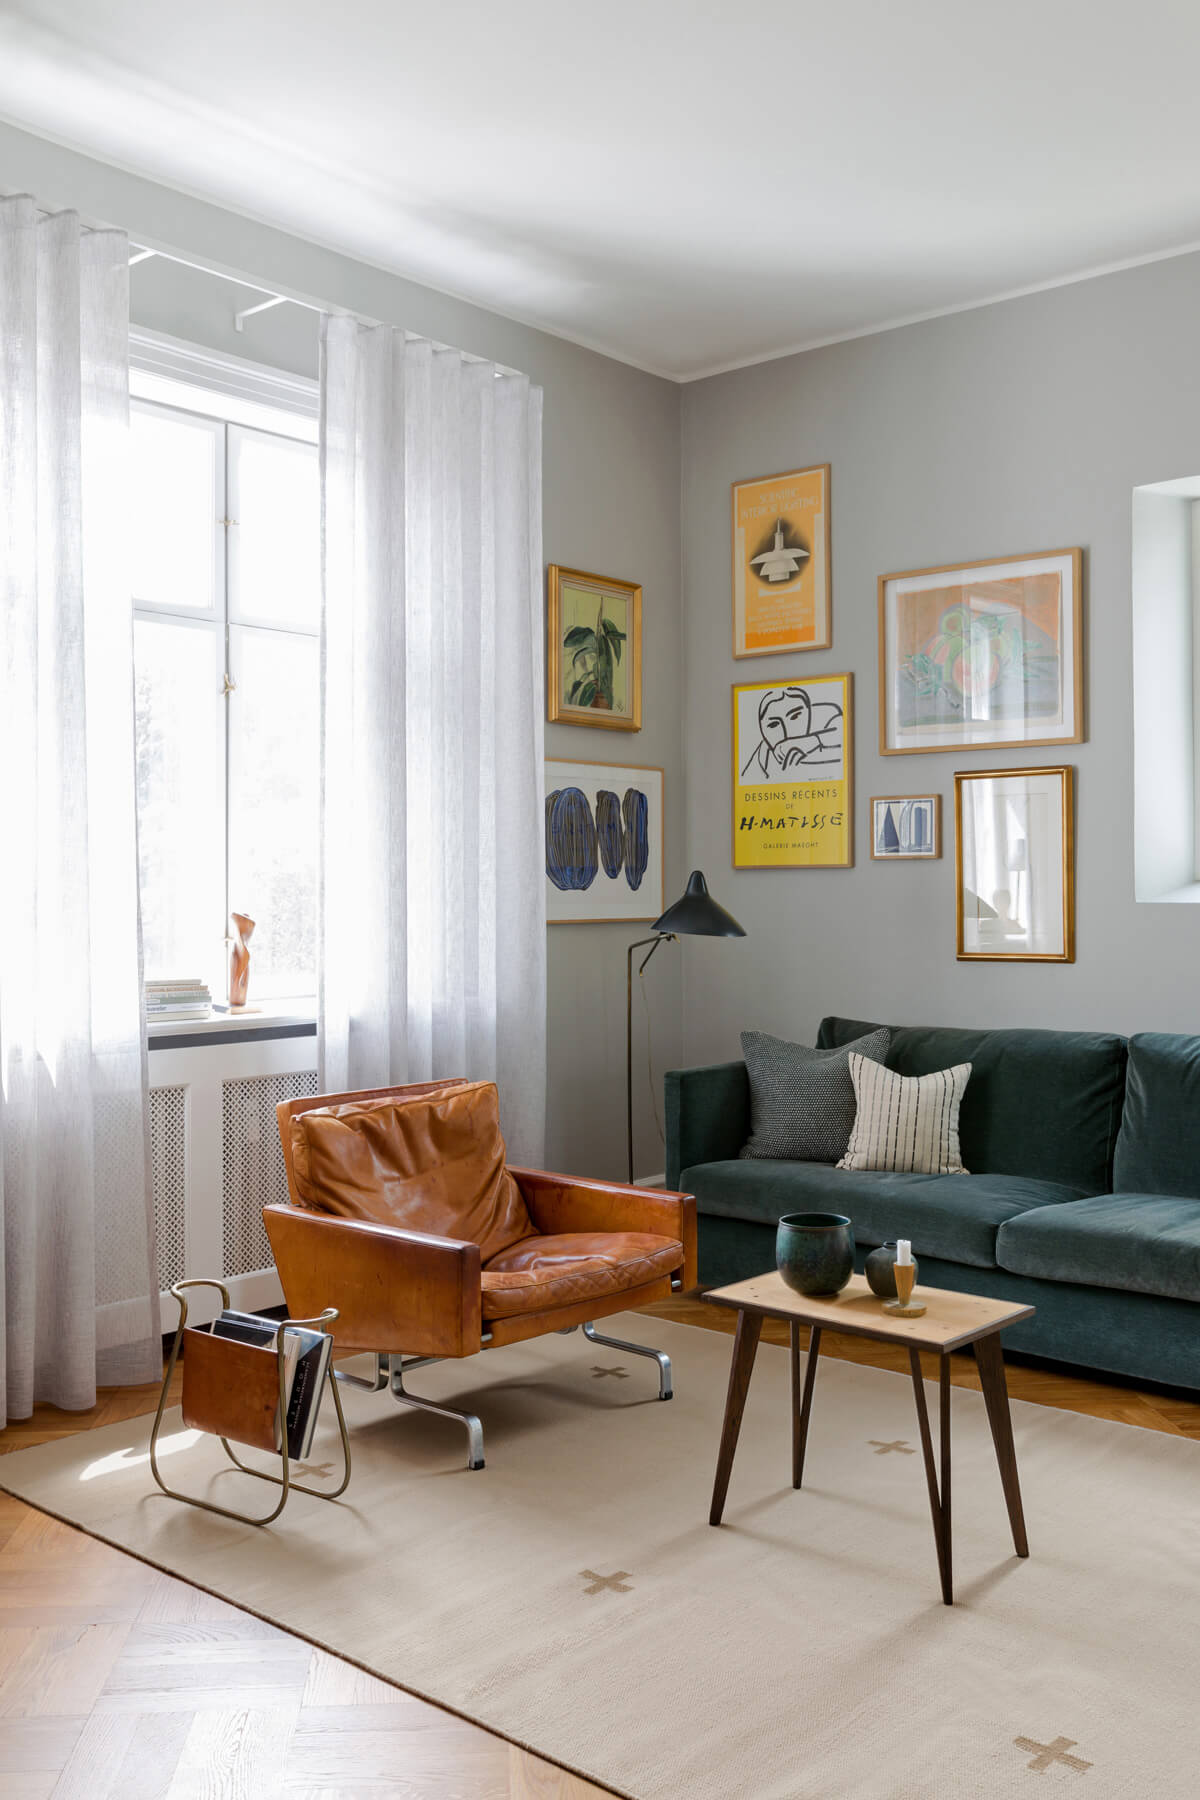 Plus in color sand displayed in an inspiring living room with a teal sofa, leather armchair and art on the walls.